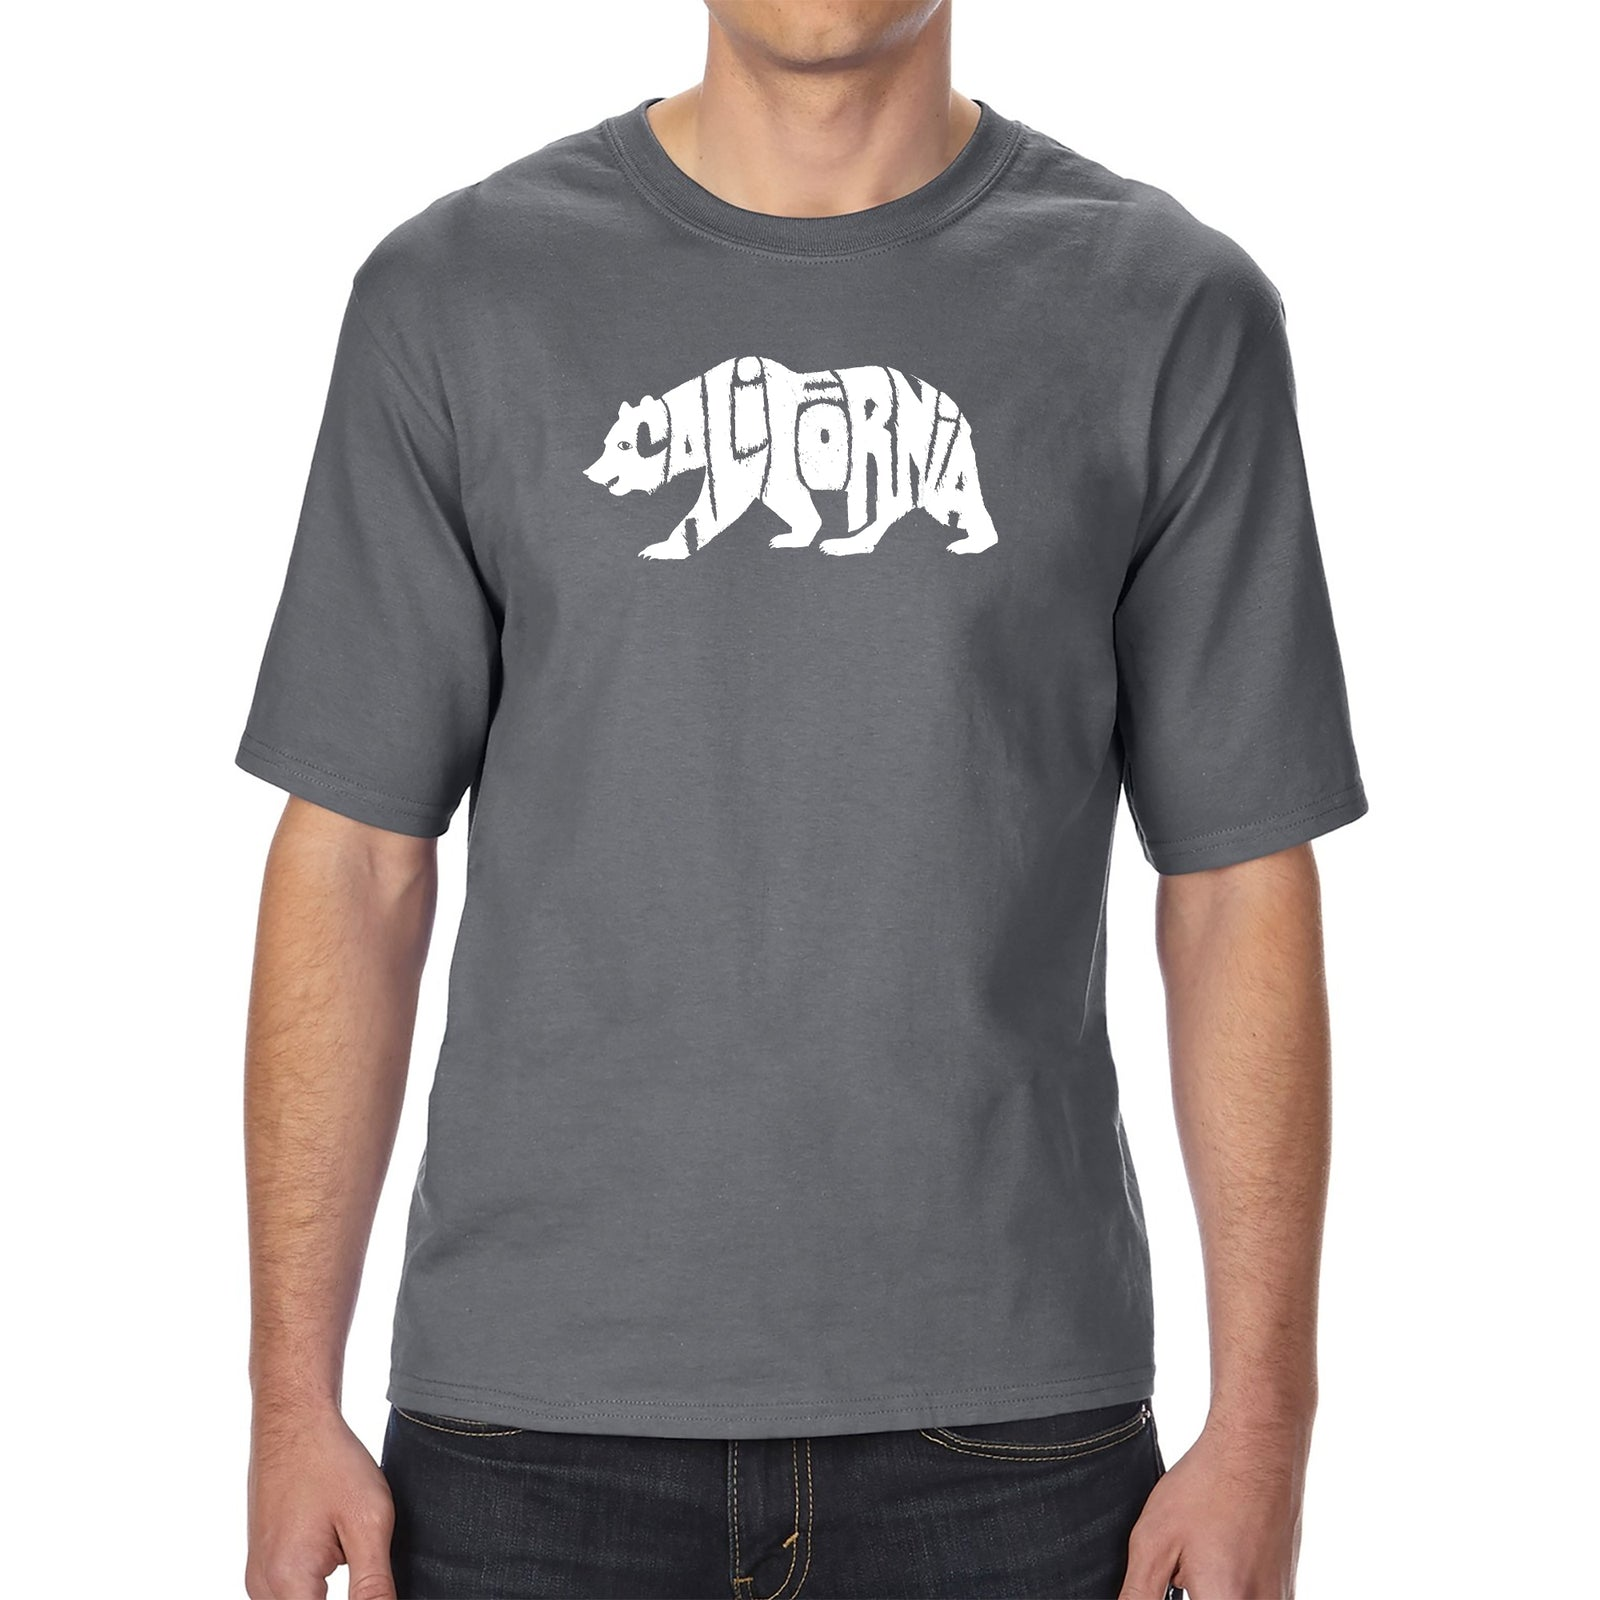 Men's Tall and Long Word Art T-shirt - California Bear